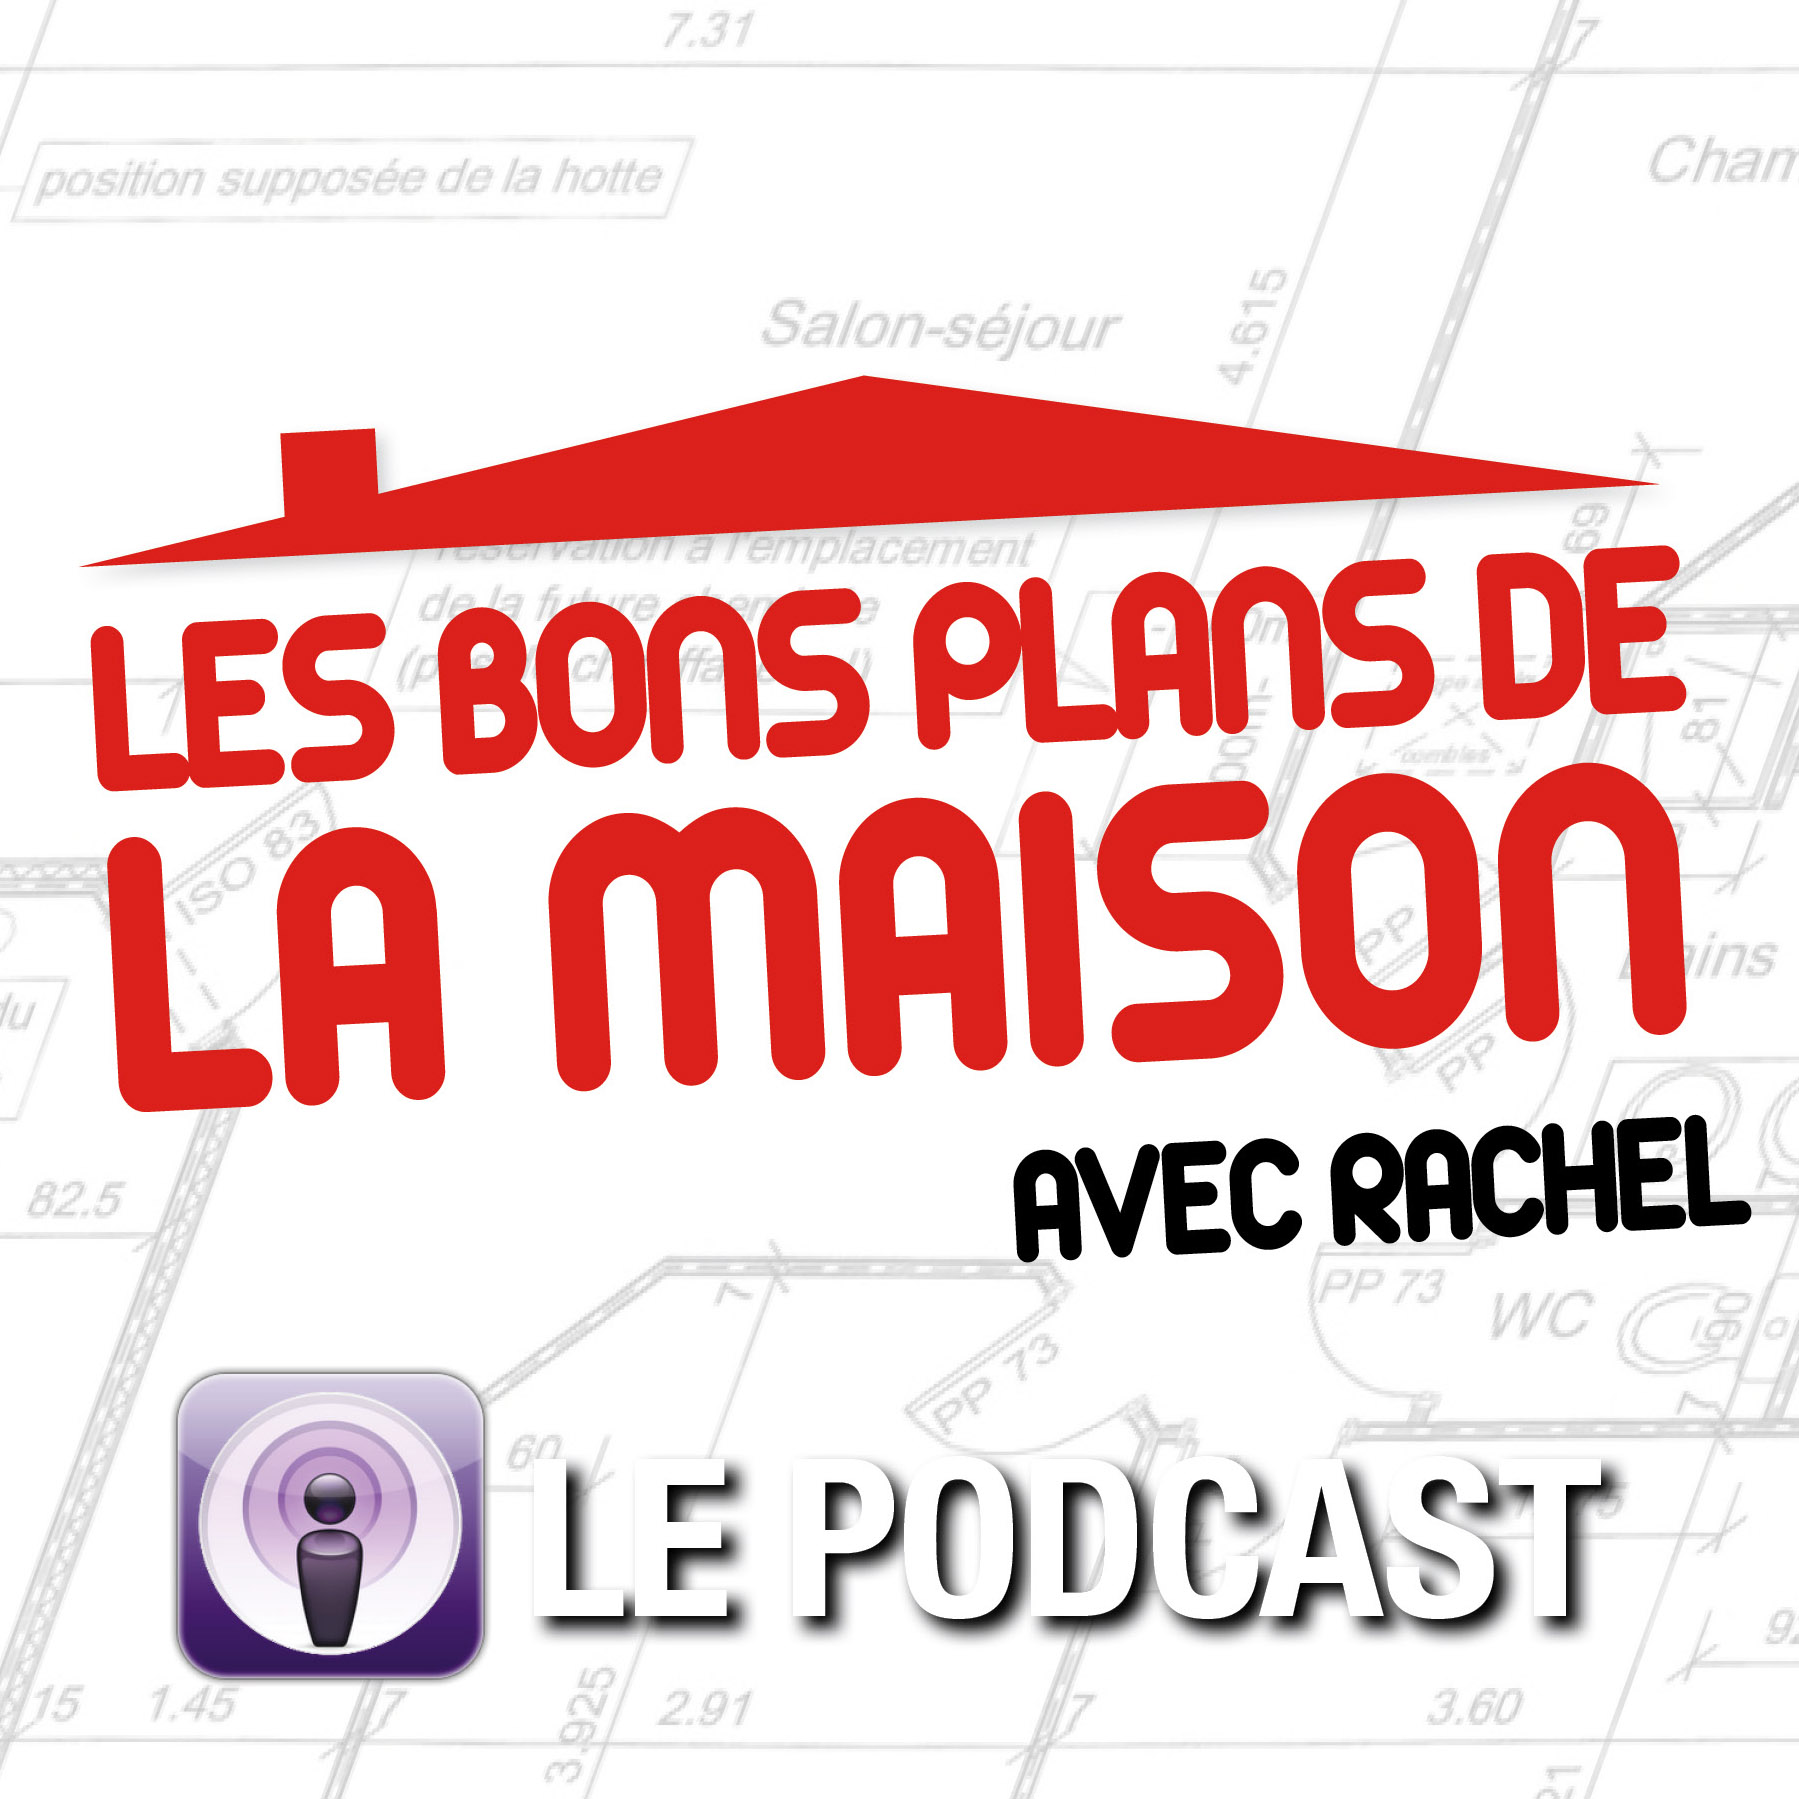 Les bons plans de la maison - Le Podcast